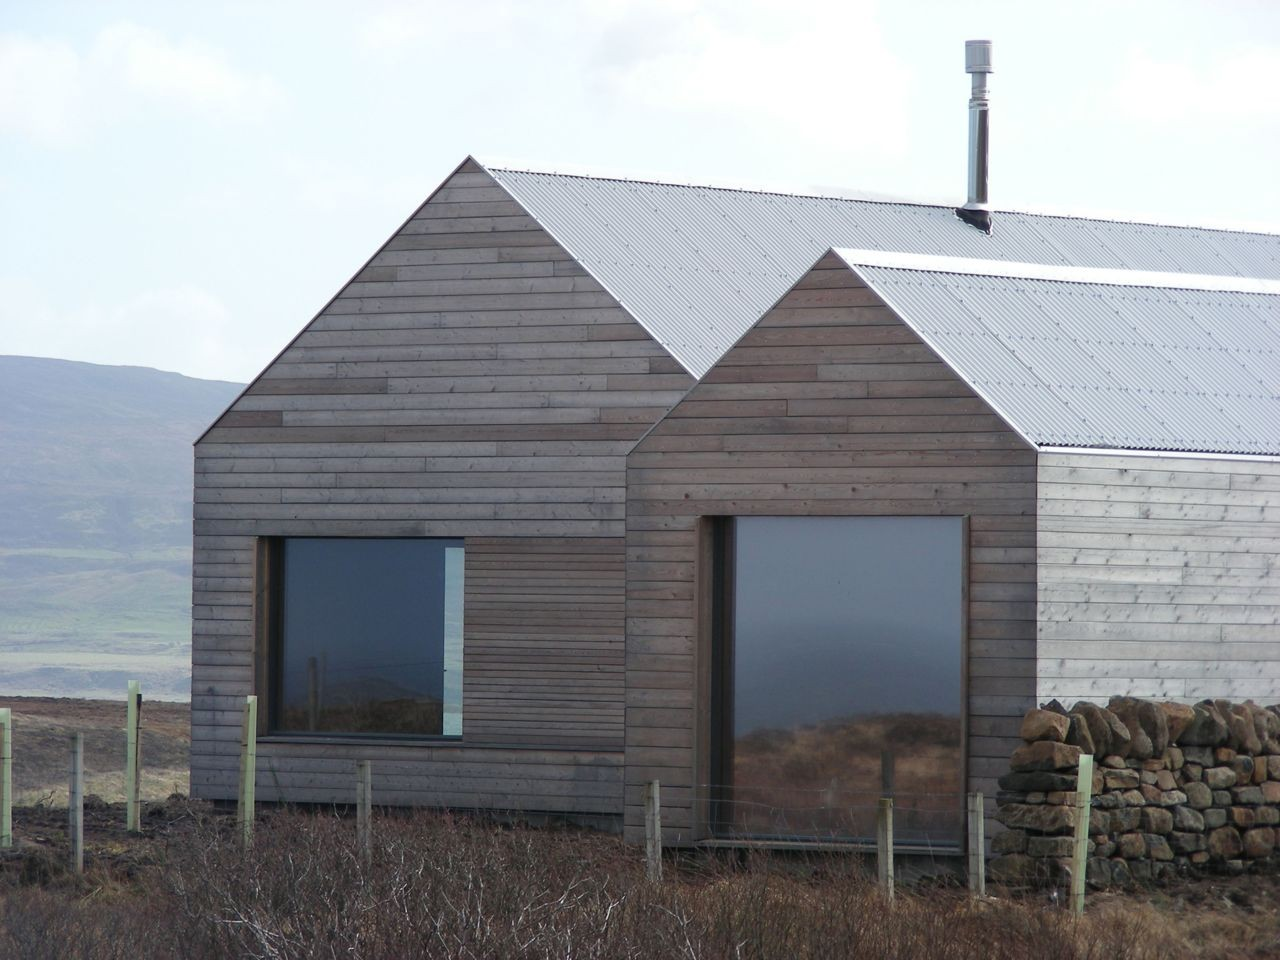 Vernacular modern architectural design ideas the borreraig house in scotland united kingdom Home design ideas photos architecture